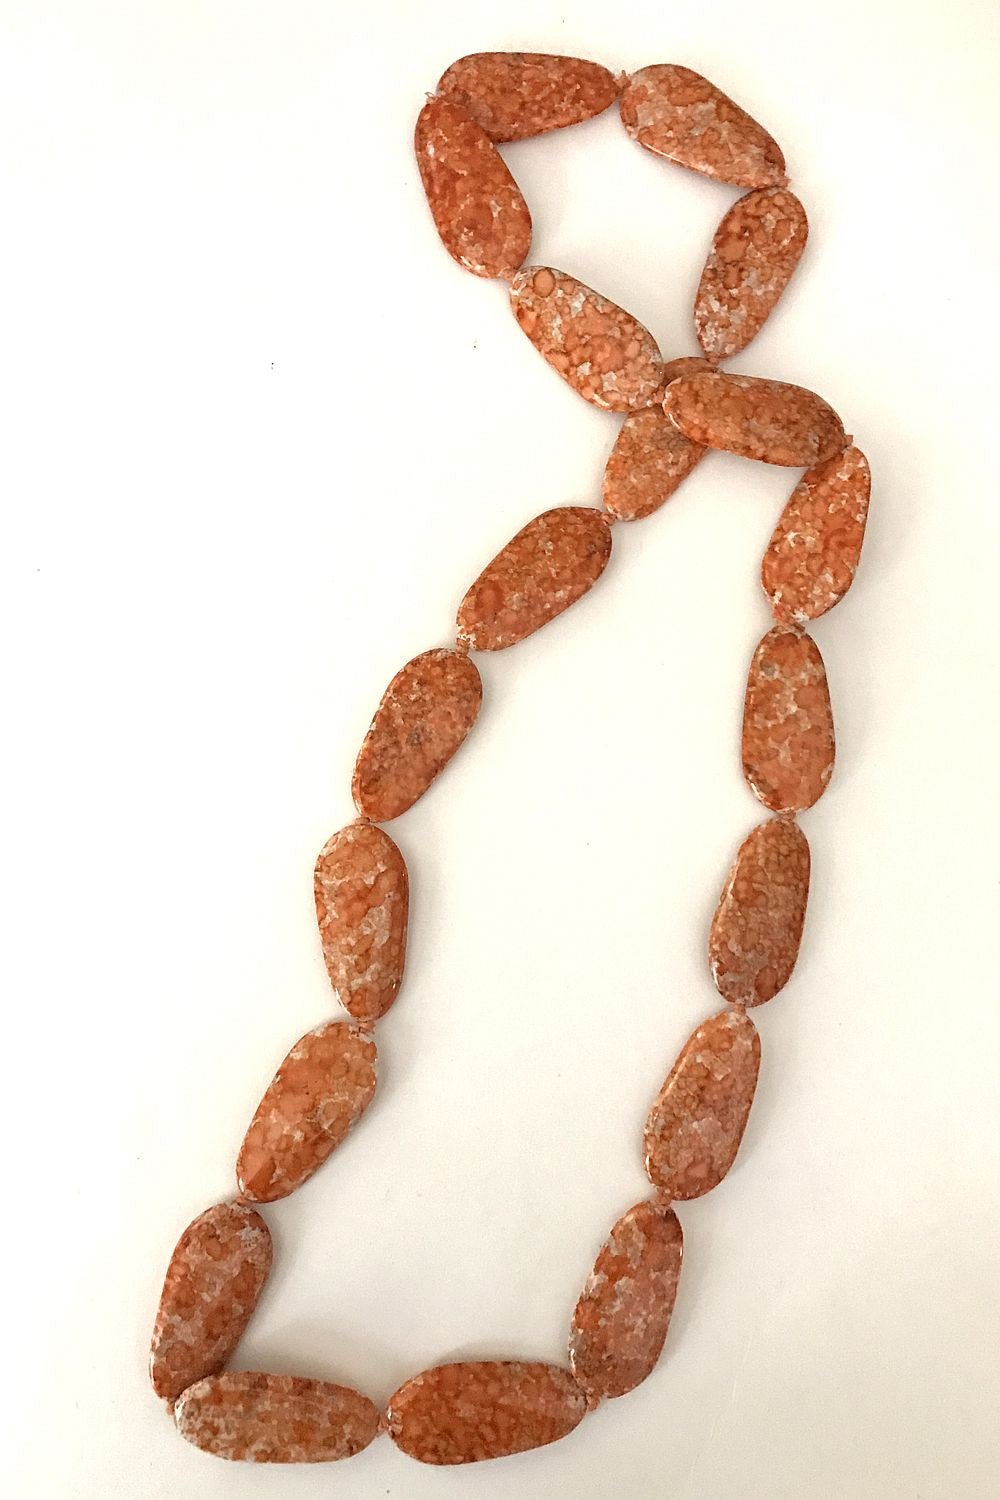 Orange Speckled Necklace - at I Love Tunics @ www.ilovetunics.com = Number One! Tunics Destination